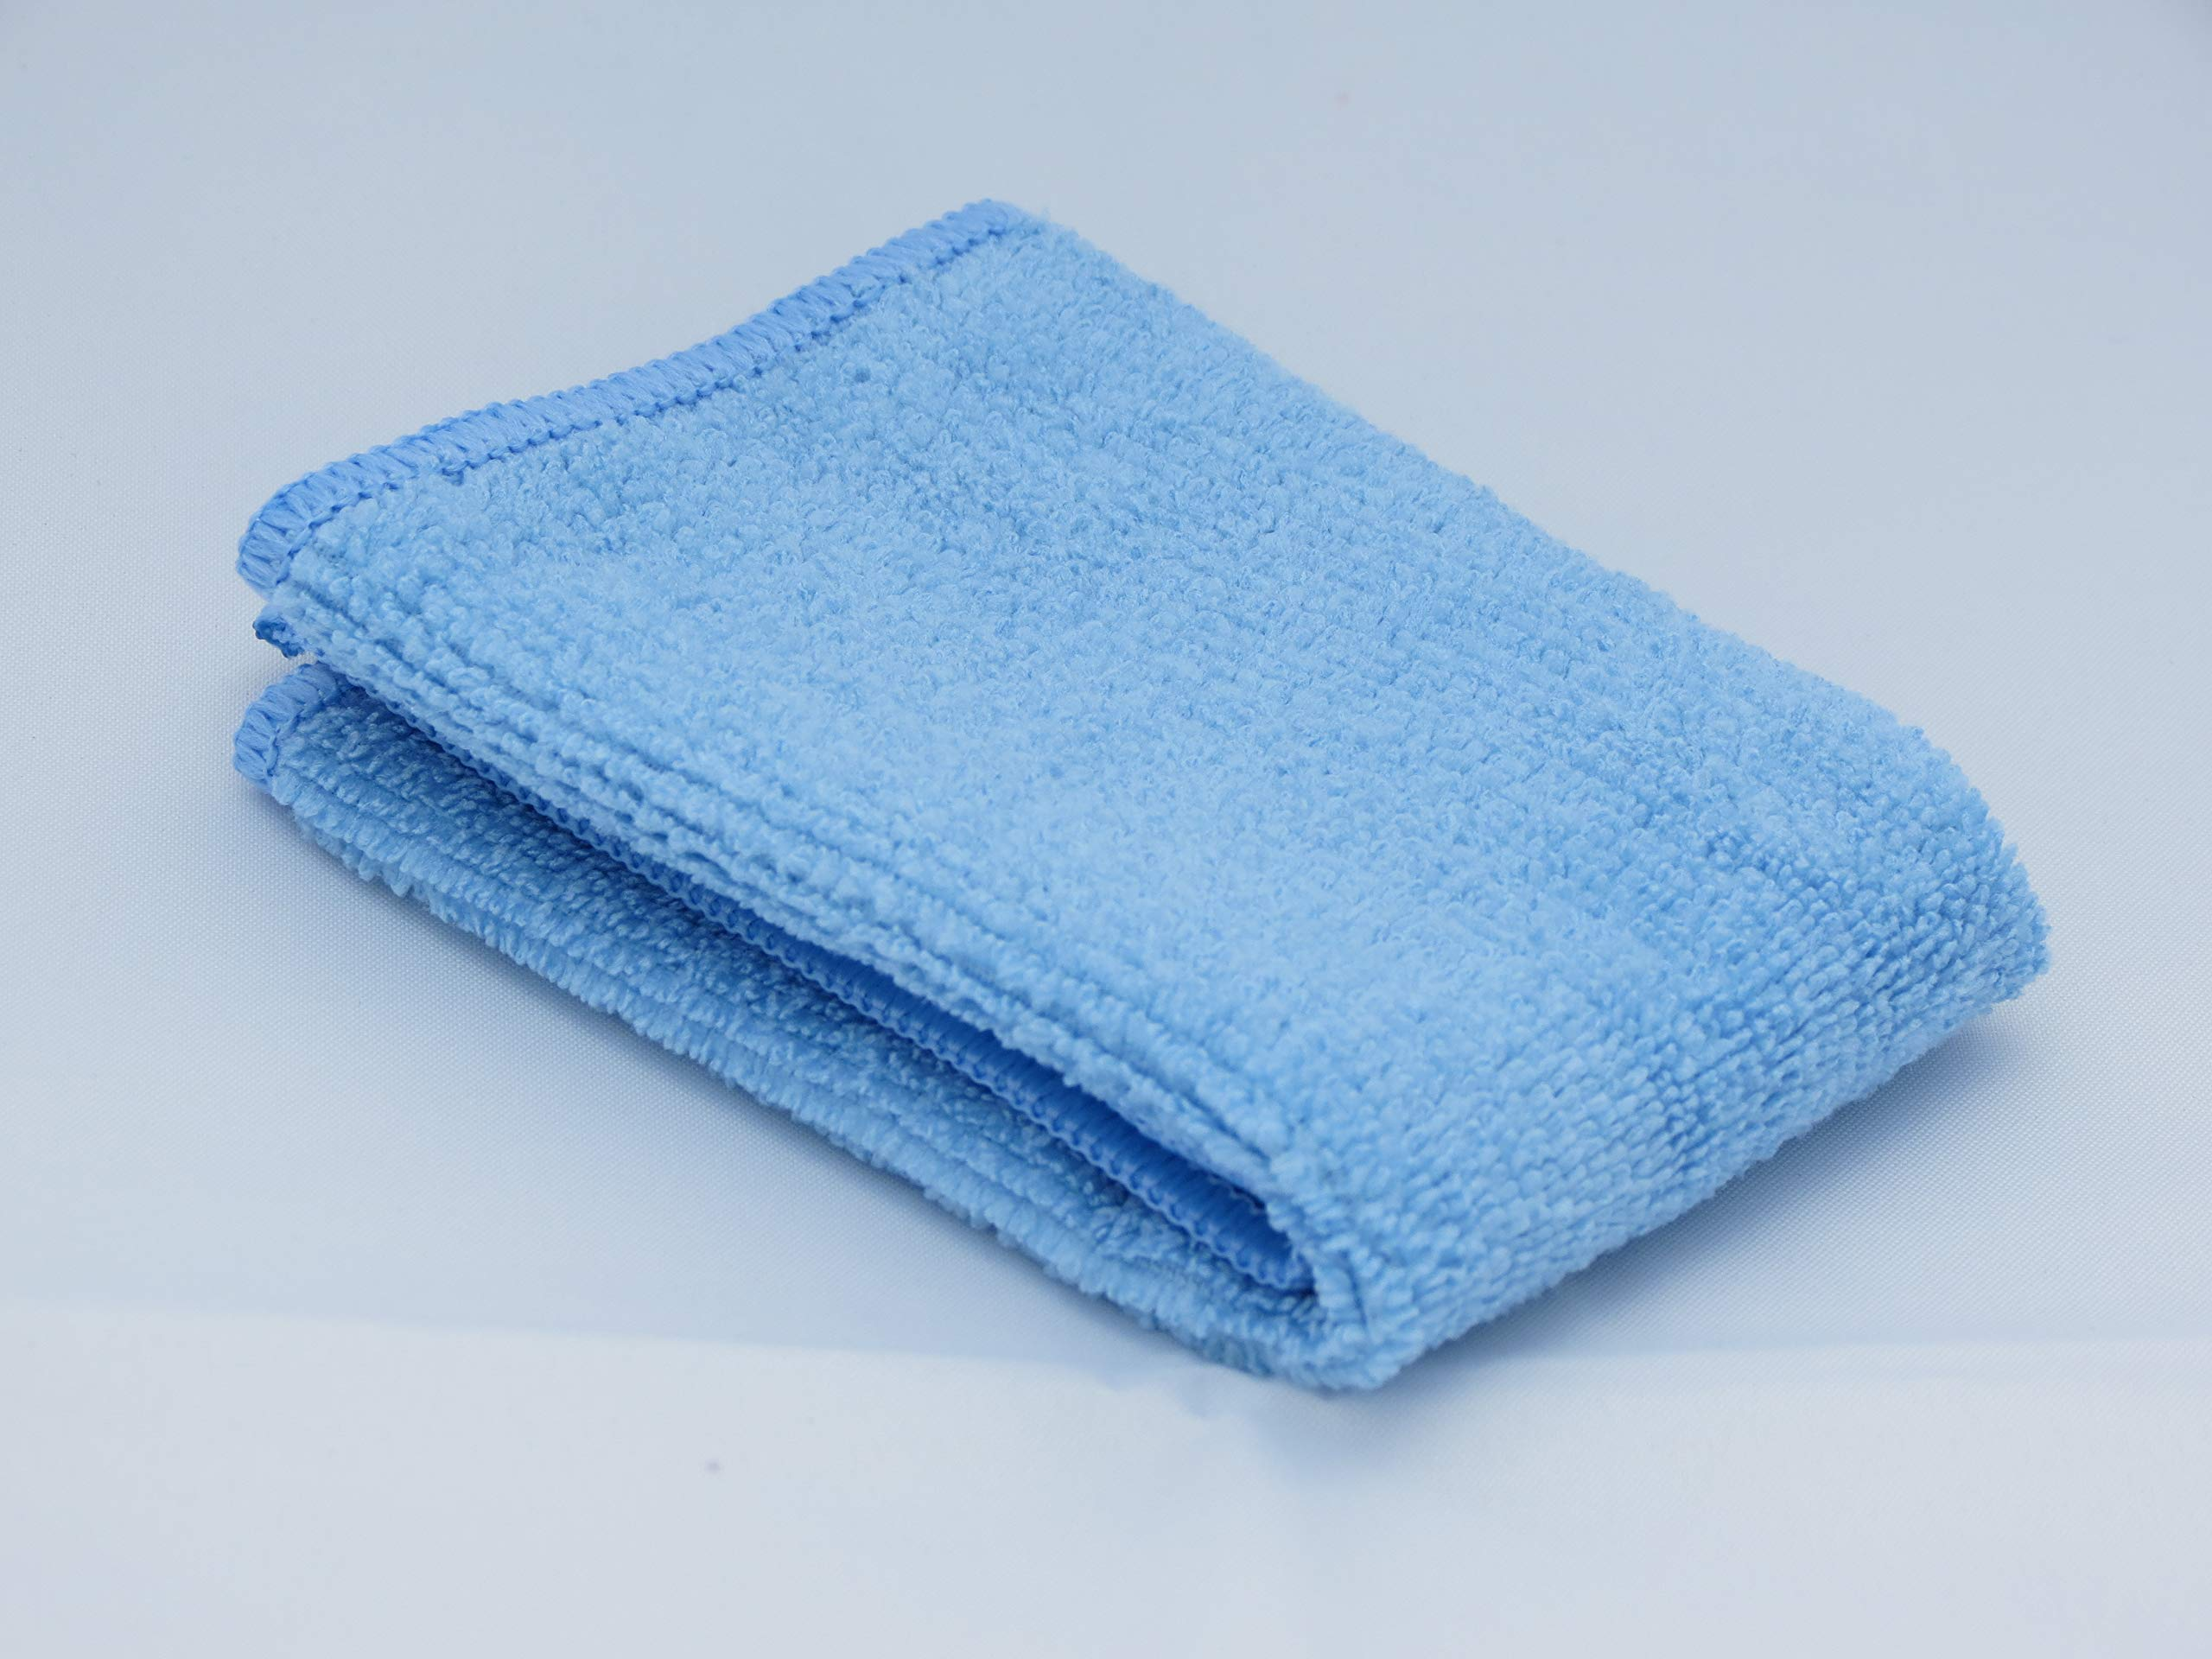 8''x 8'' Mini Super Blue Microfiber Towel use only with Flat Screen Clean Screen Cleaner Kit/Touch Screen Cleaner/Flat Screen Cleaner/Wearable Cleaner/Eyeglasses Cleaner/Extreme Demos Below